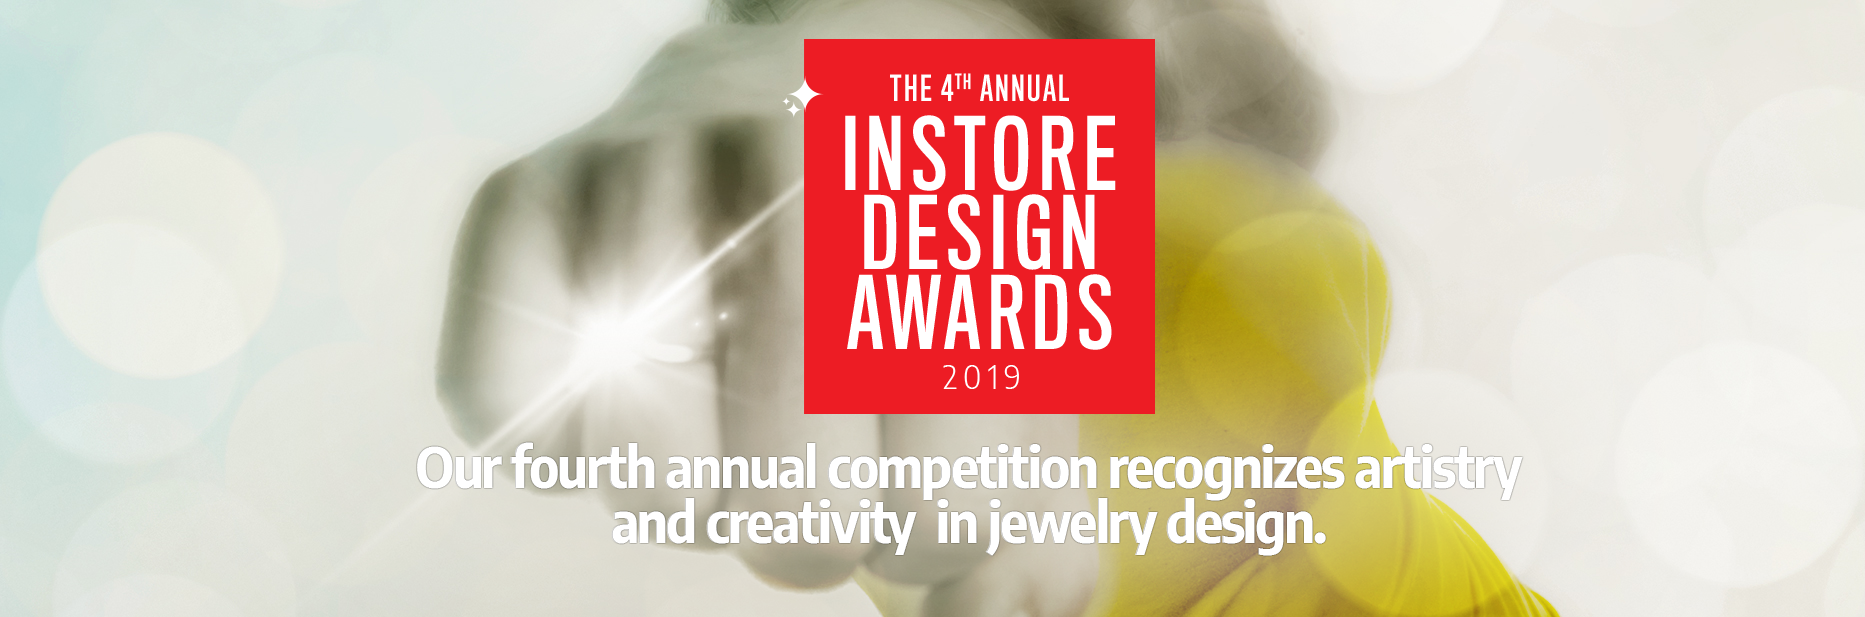 THE INSTORE DESIGN AWARDS 2019 – Winners Announced!